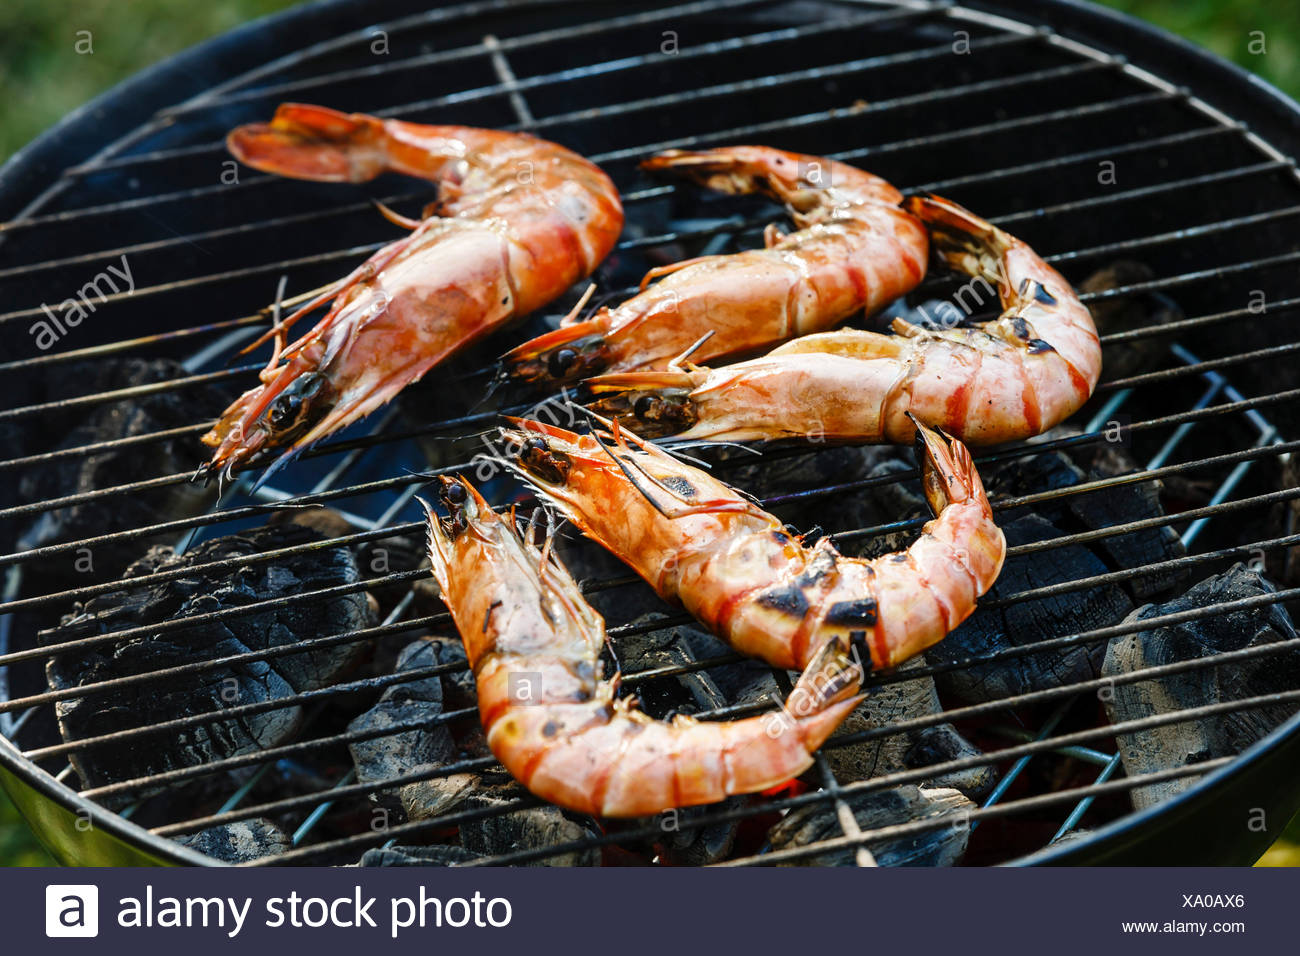 Grilled king size Prawns on grill BBQ background - Stock Image